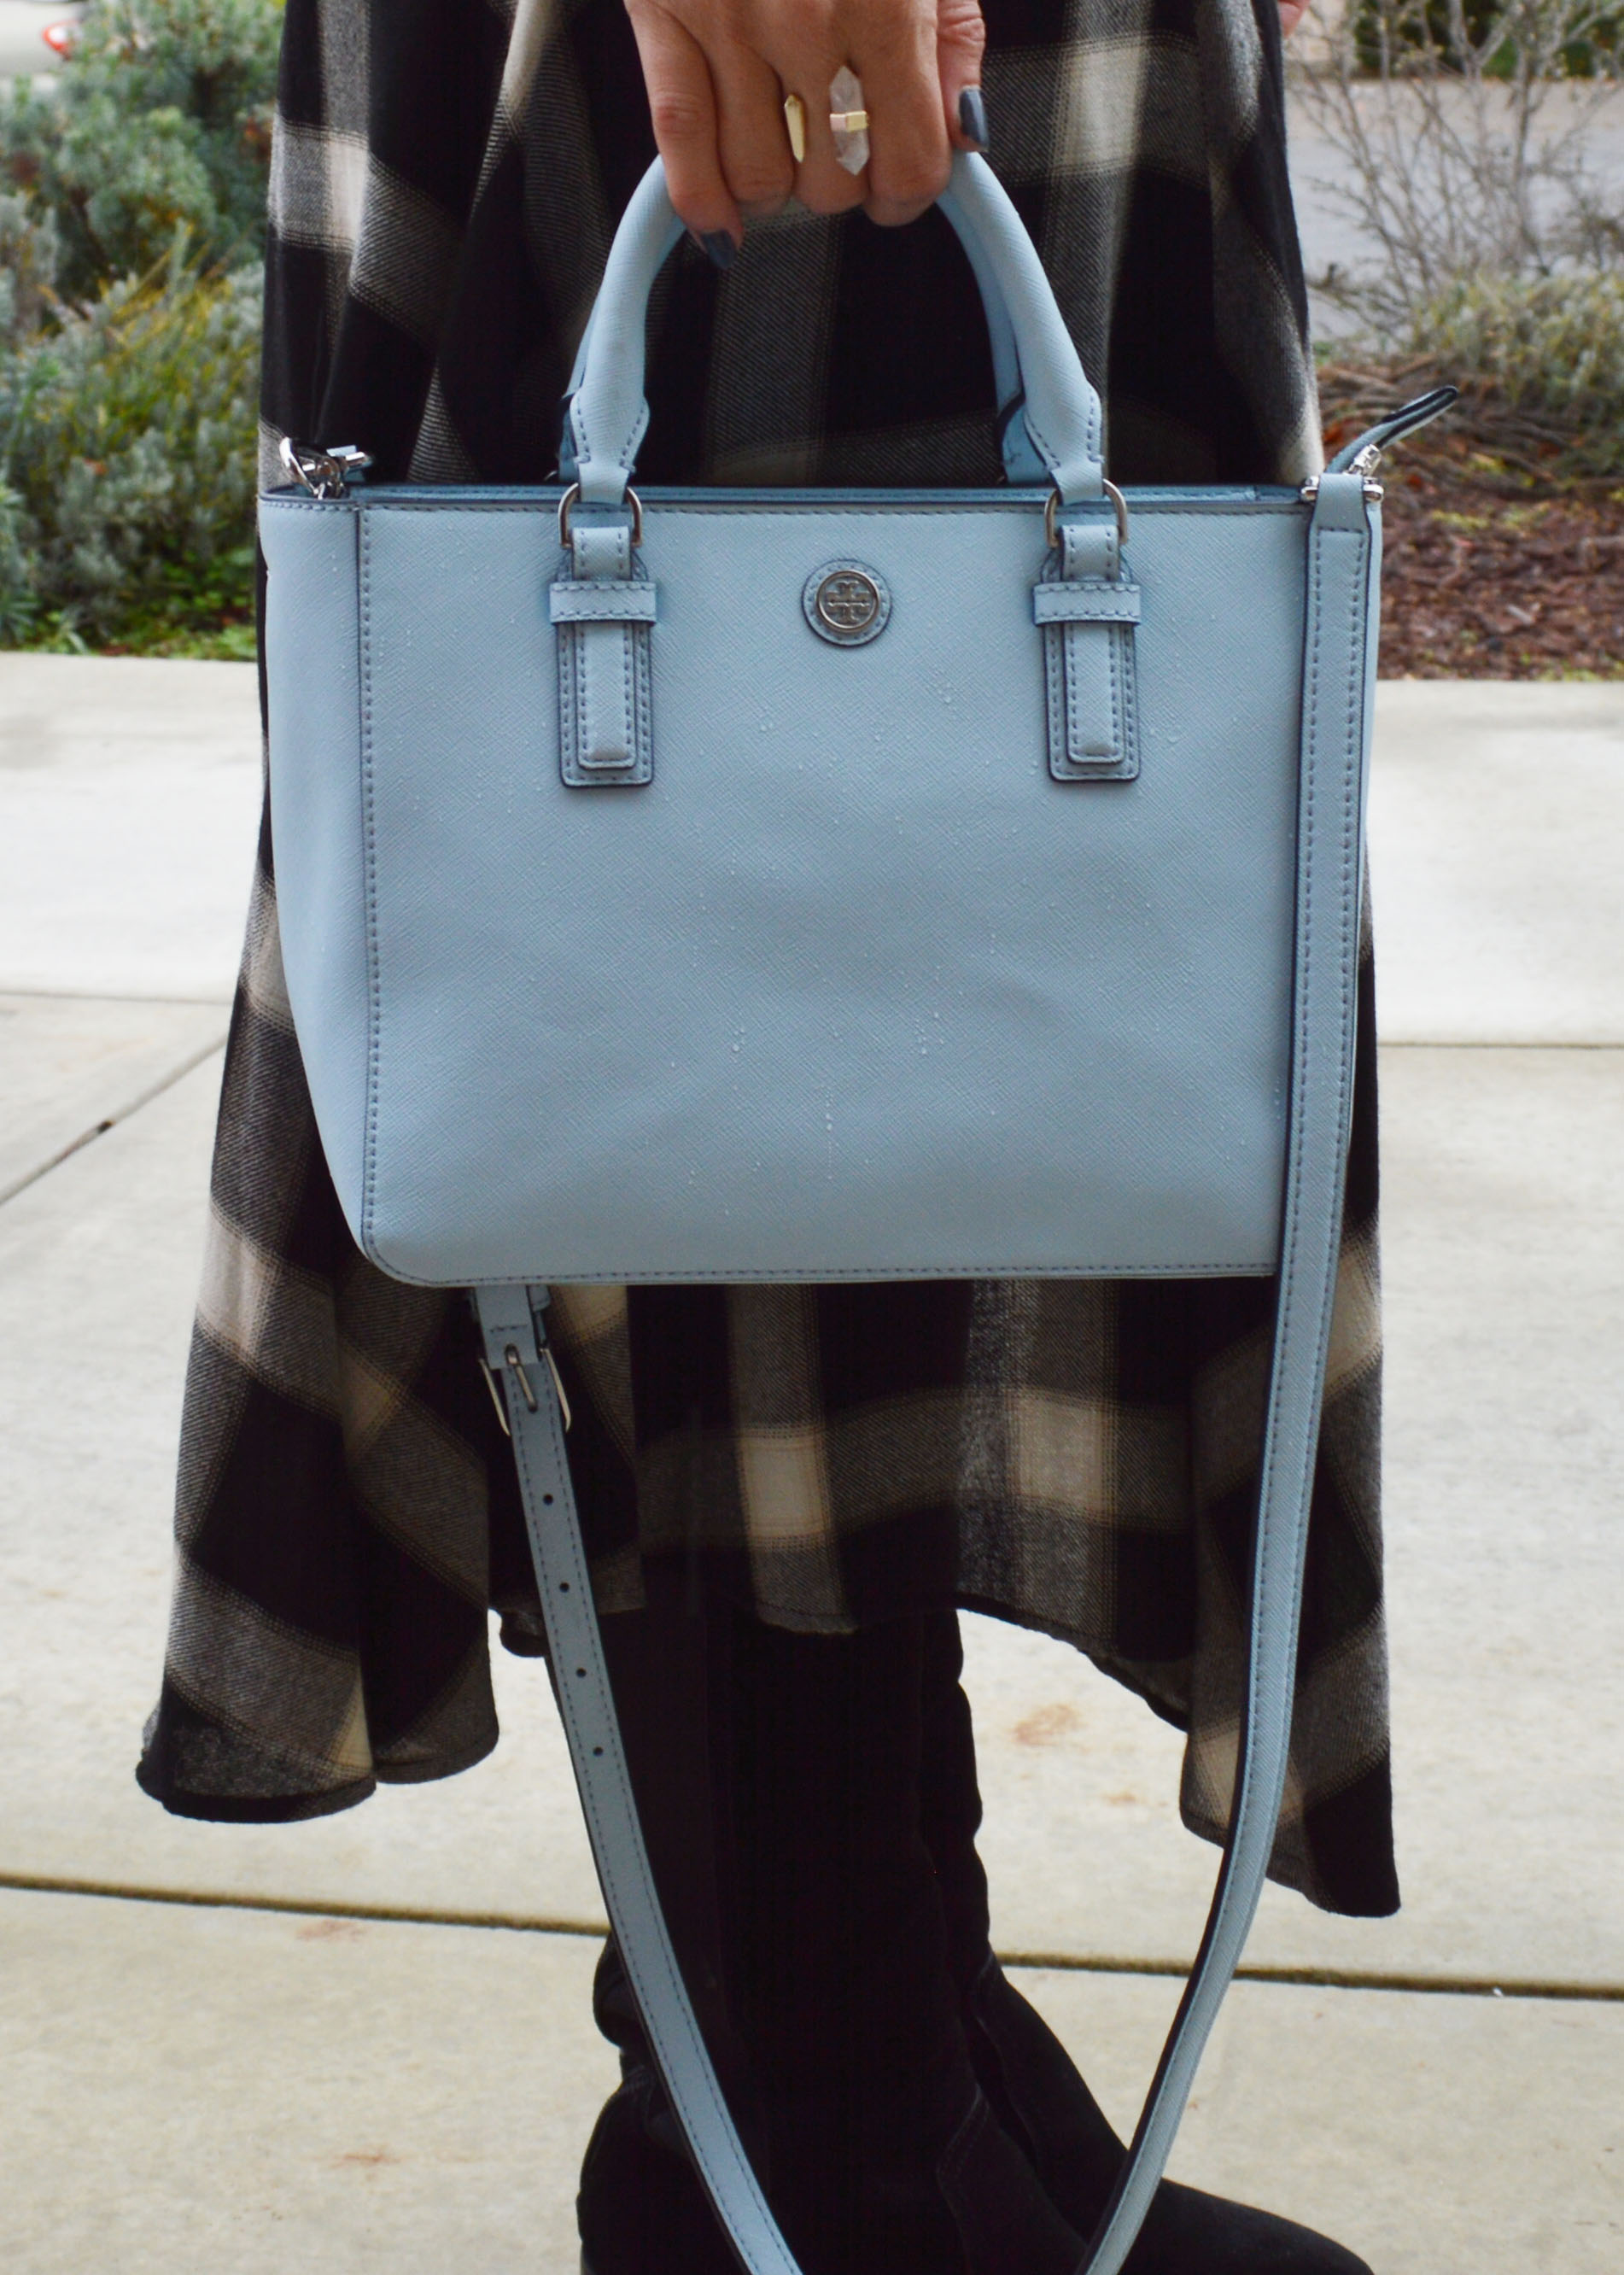 619272ebe48 Tory Burch Robinson Mini satchel review – Bay Area Fashionista